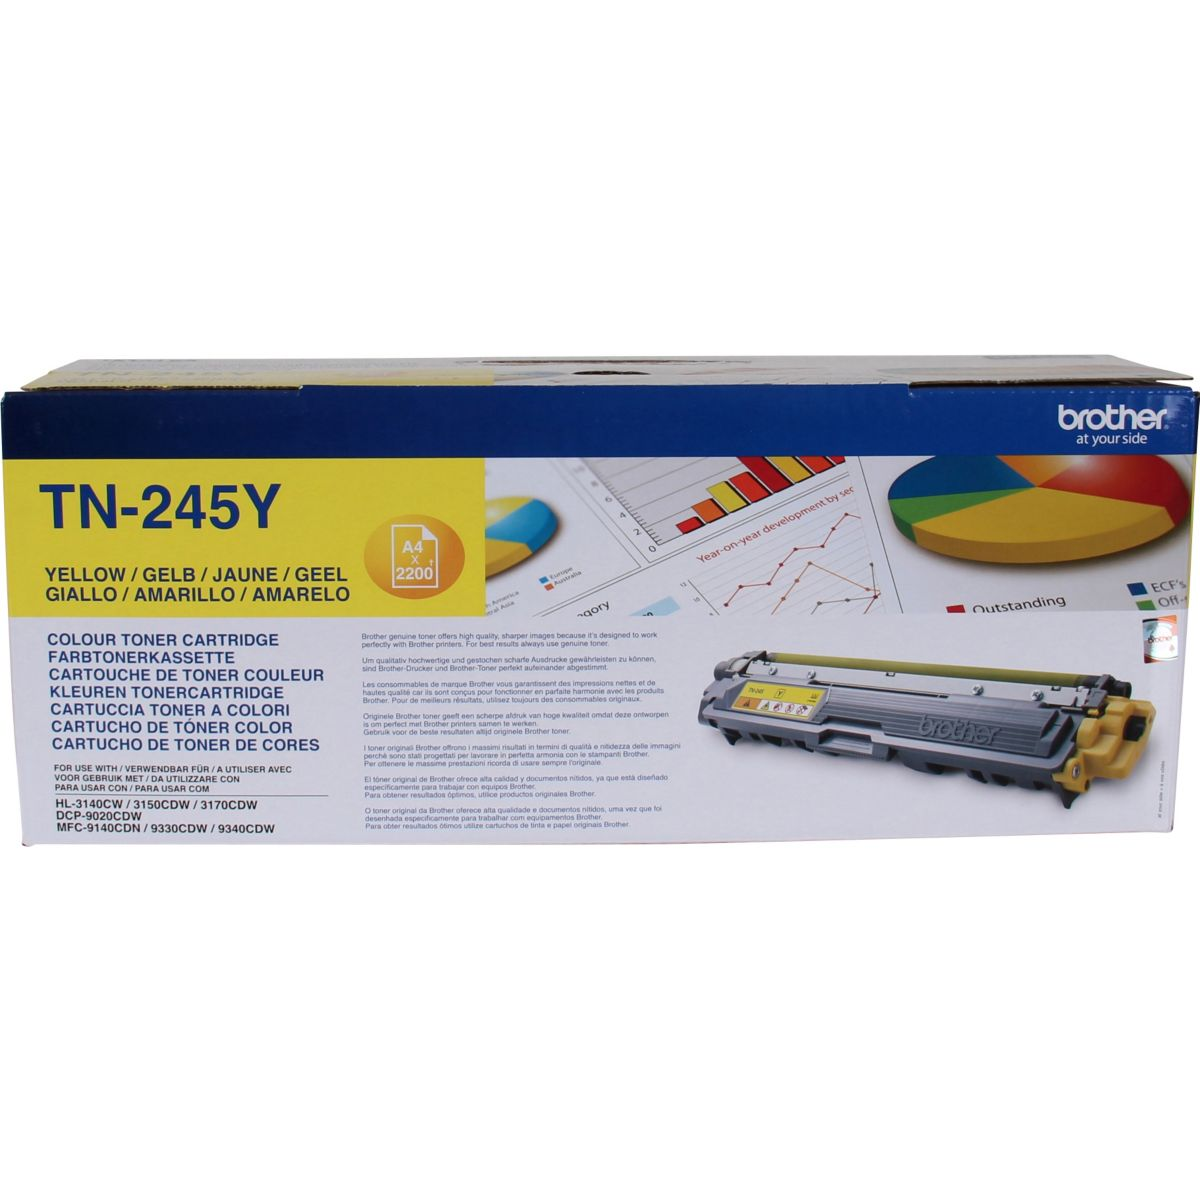 Toner brother tn245 jaune xl - 2% de remise imm�diate avec le code : deal2